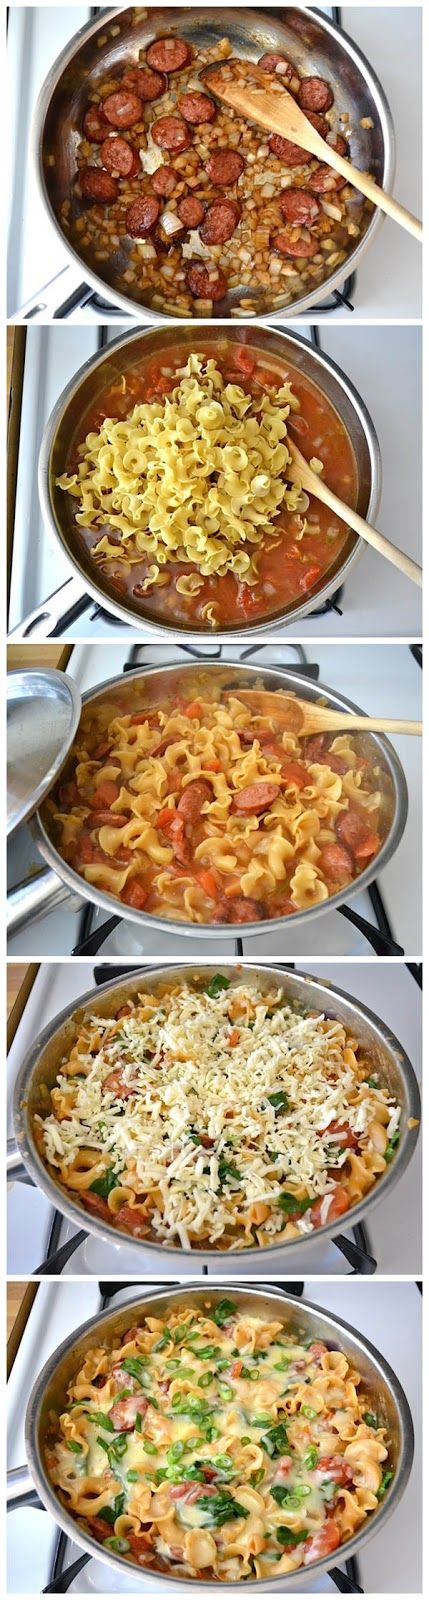 creamy spinach & sausage pasta this is really good and 3 year old approved! I used turkey smoked sausage instead of beef and it was still yummy!